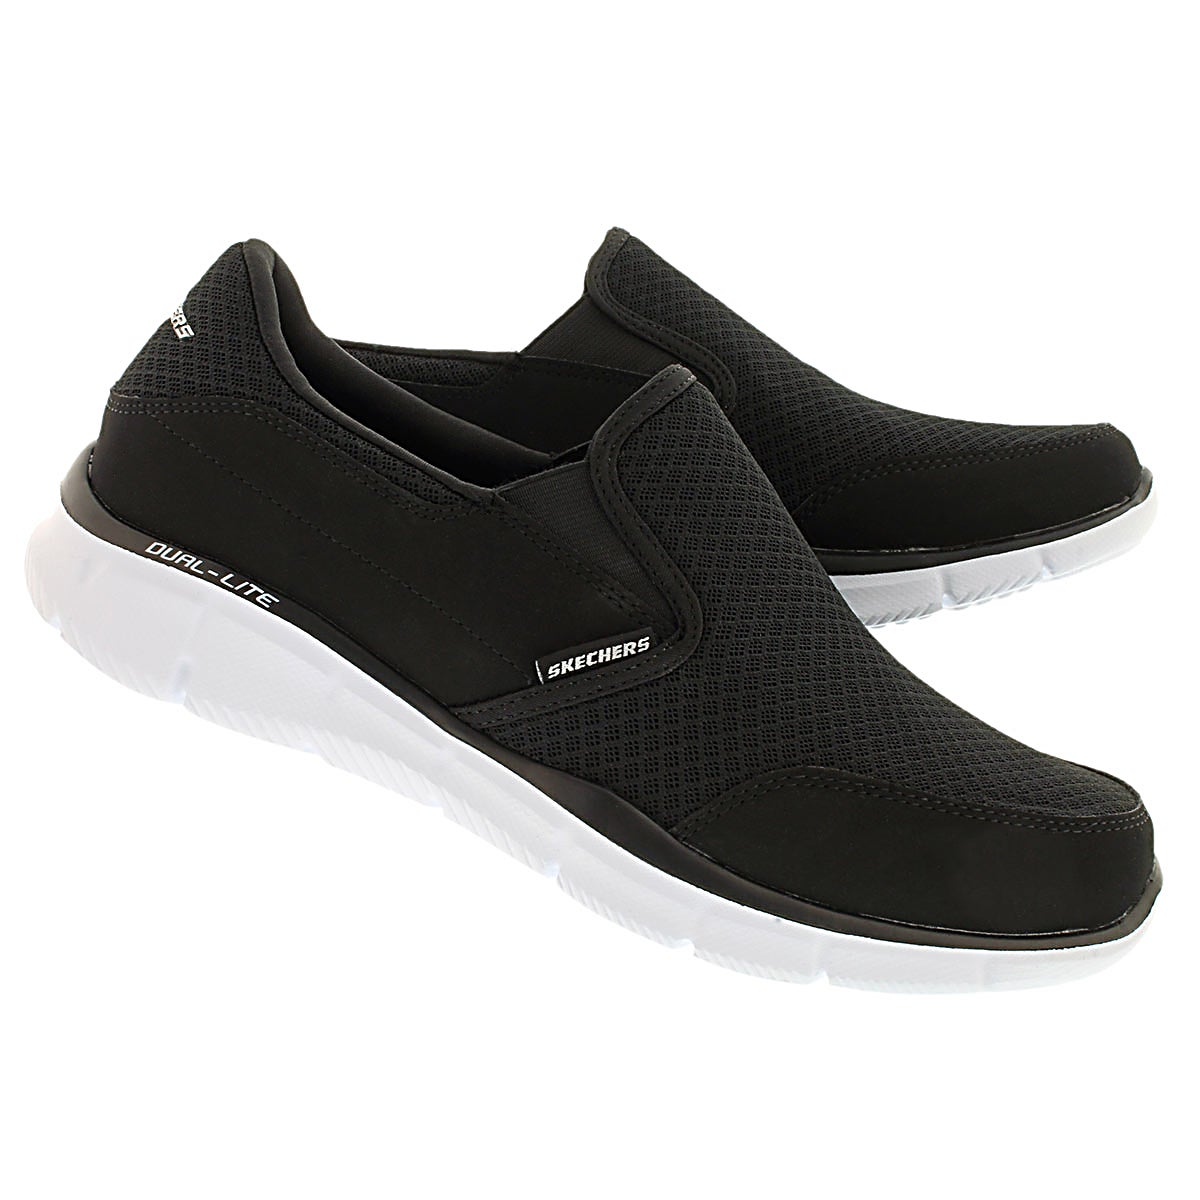 Mns Persistent blk/wht slip on sneaker